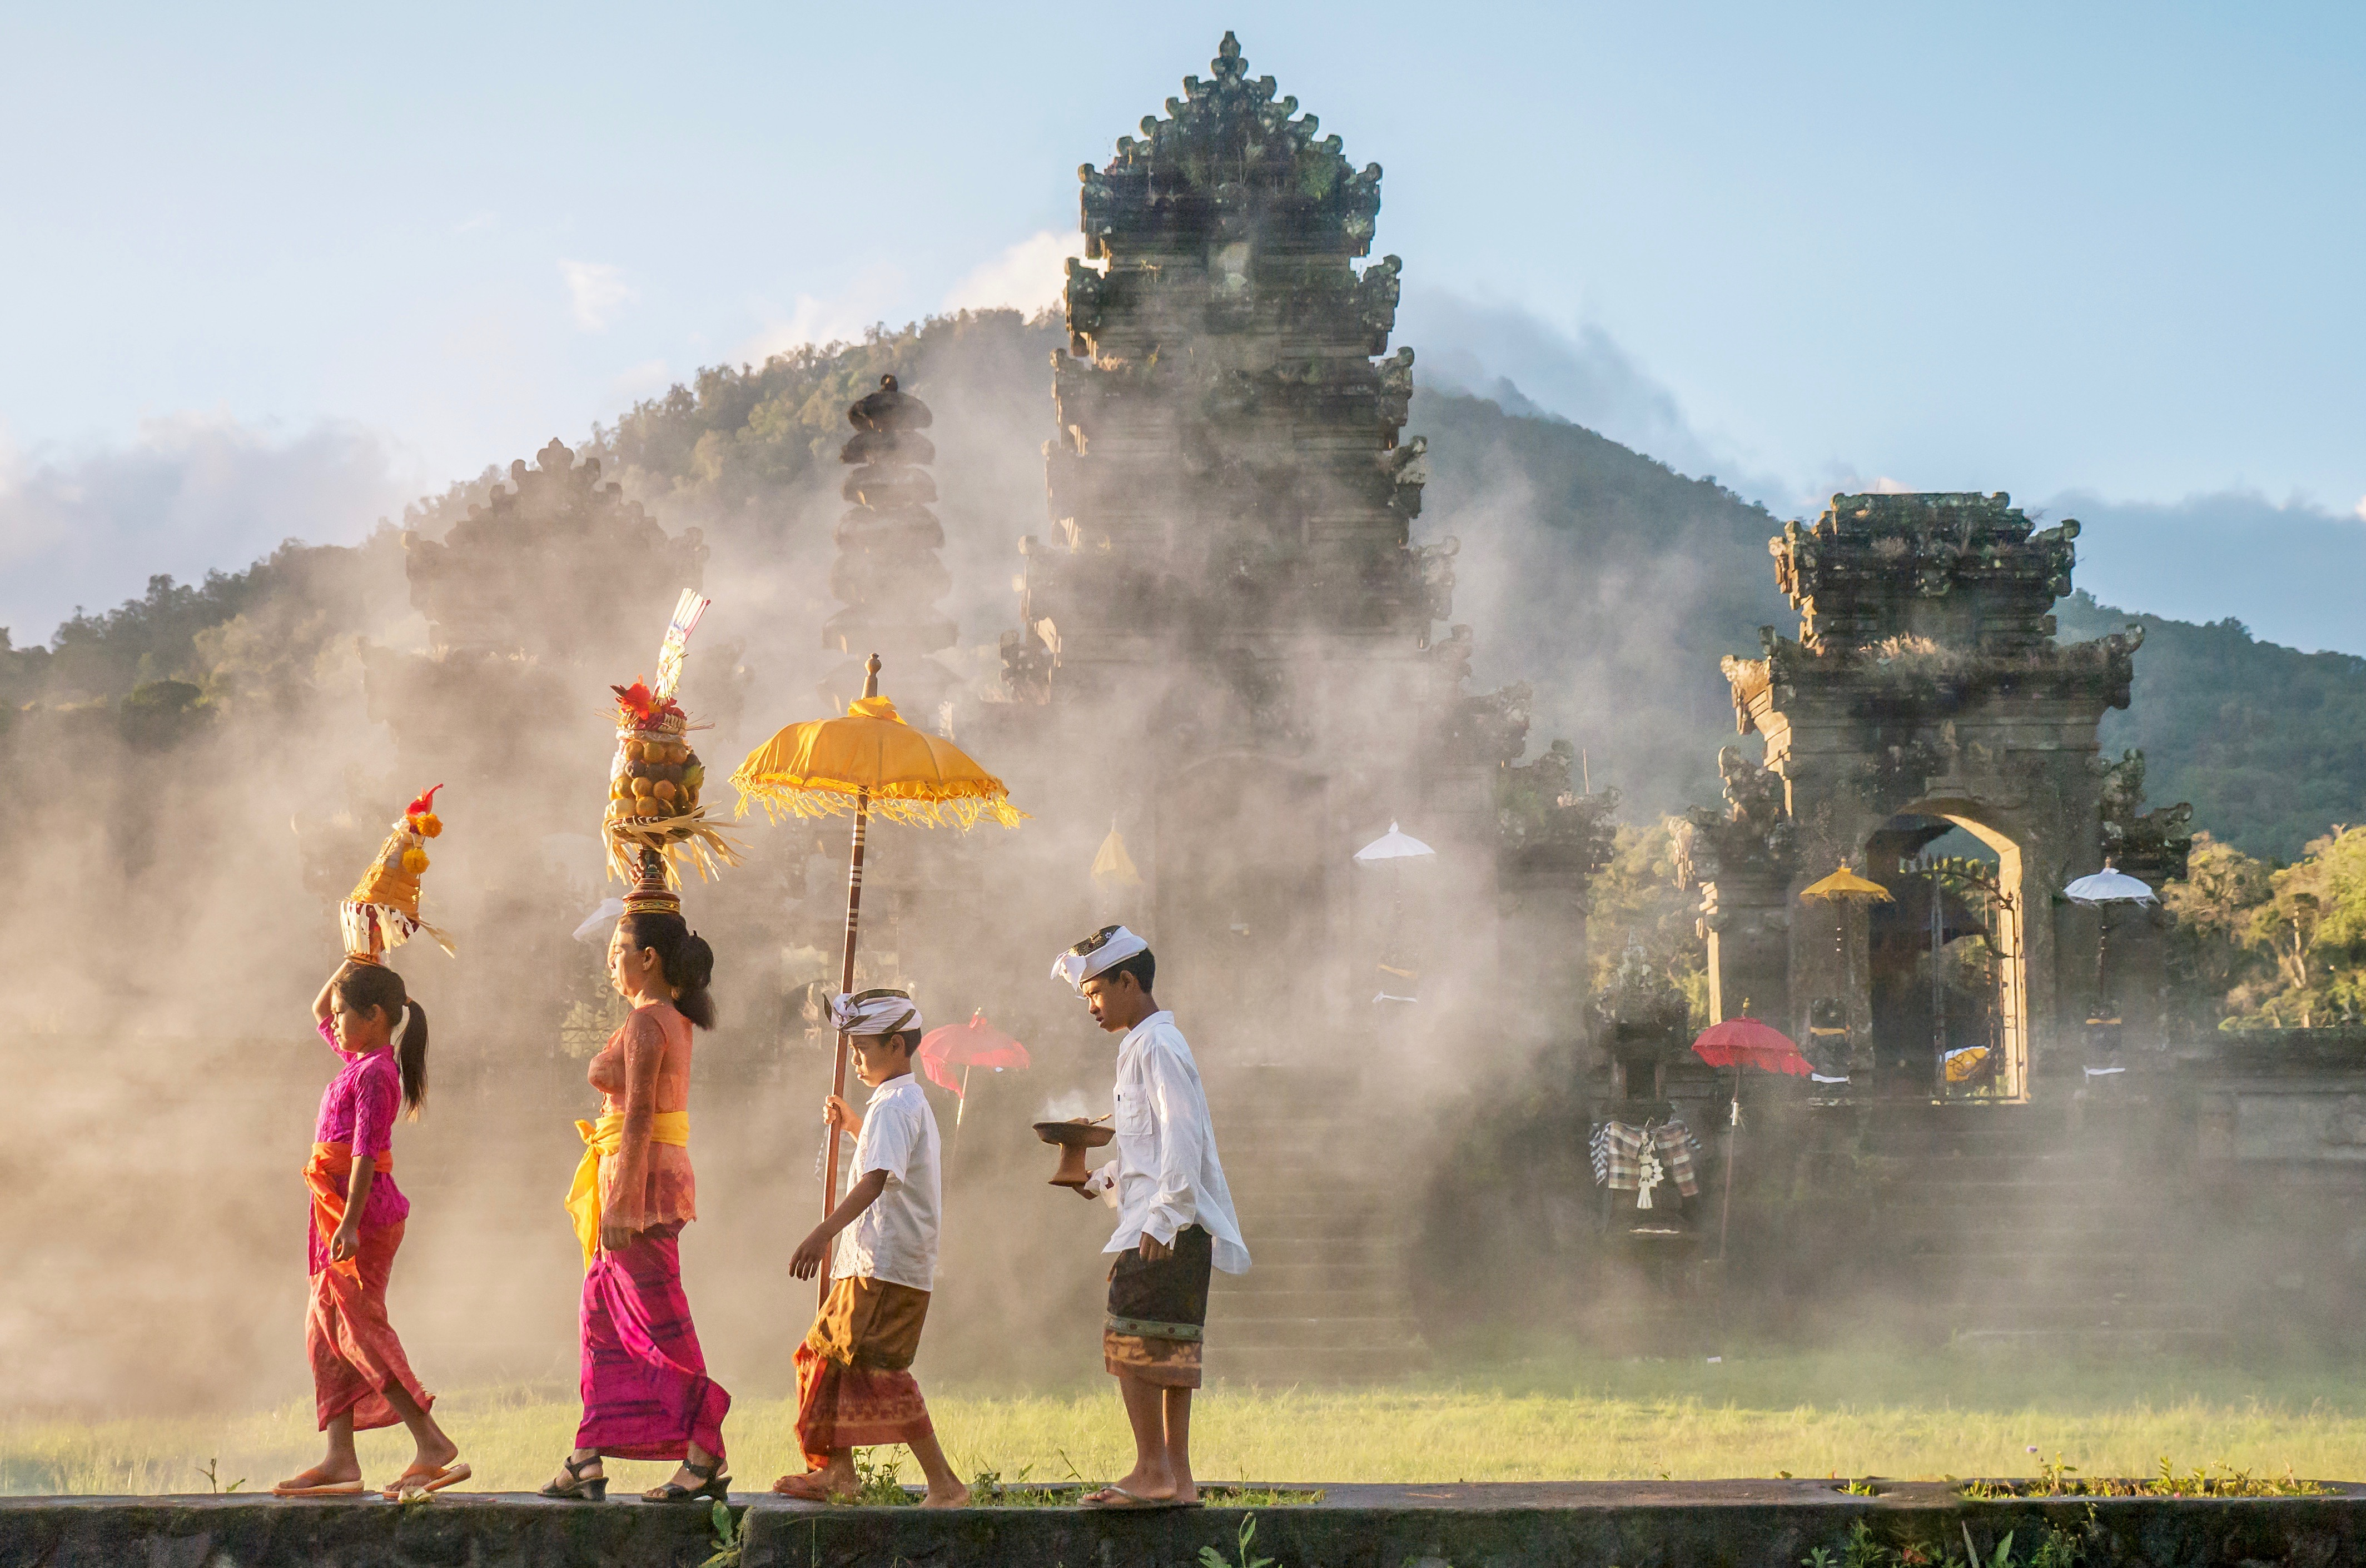 Showing traditional Balinese male and female ceremonial clothing and religious offerings as a mother and children walk to a Hindu temple (pura) in Bali.